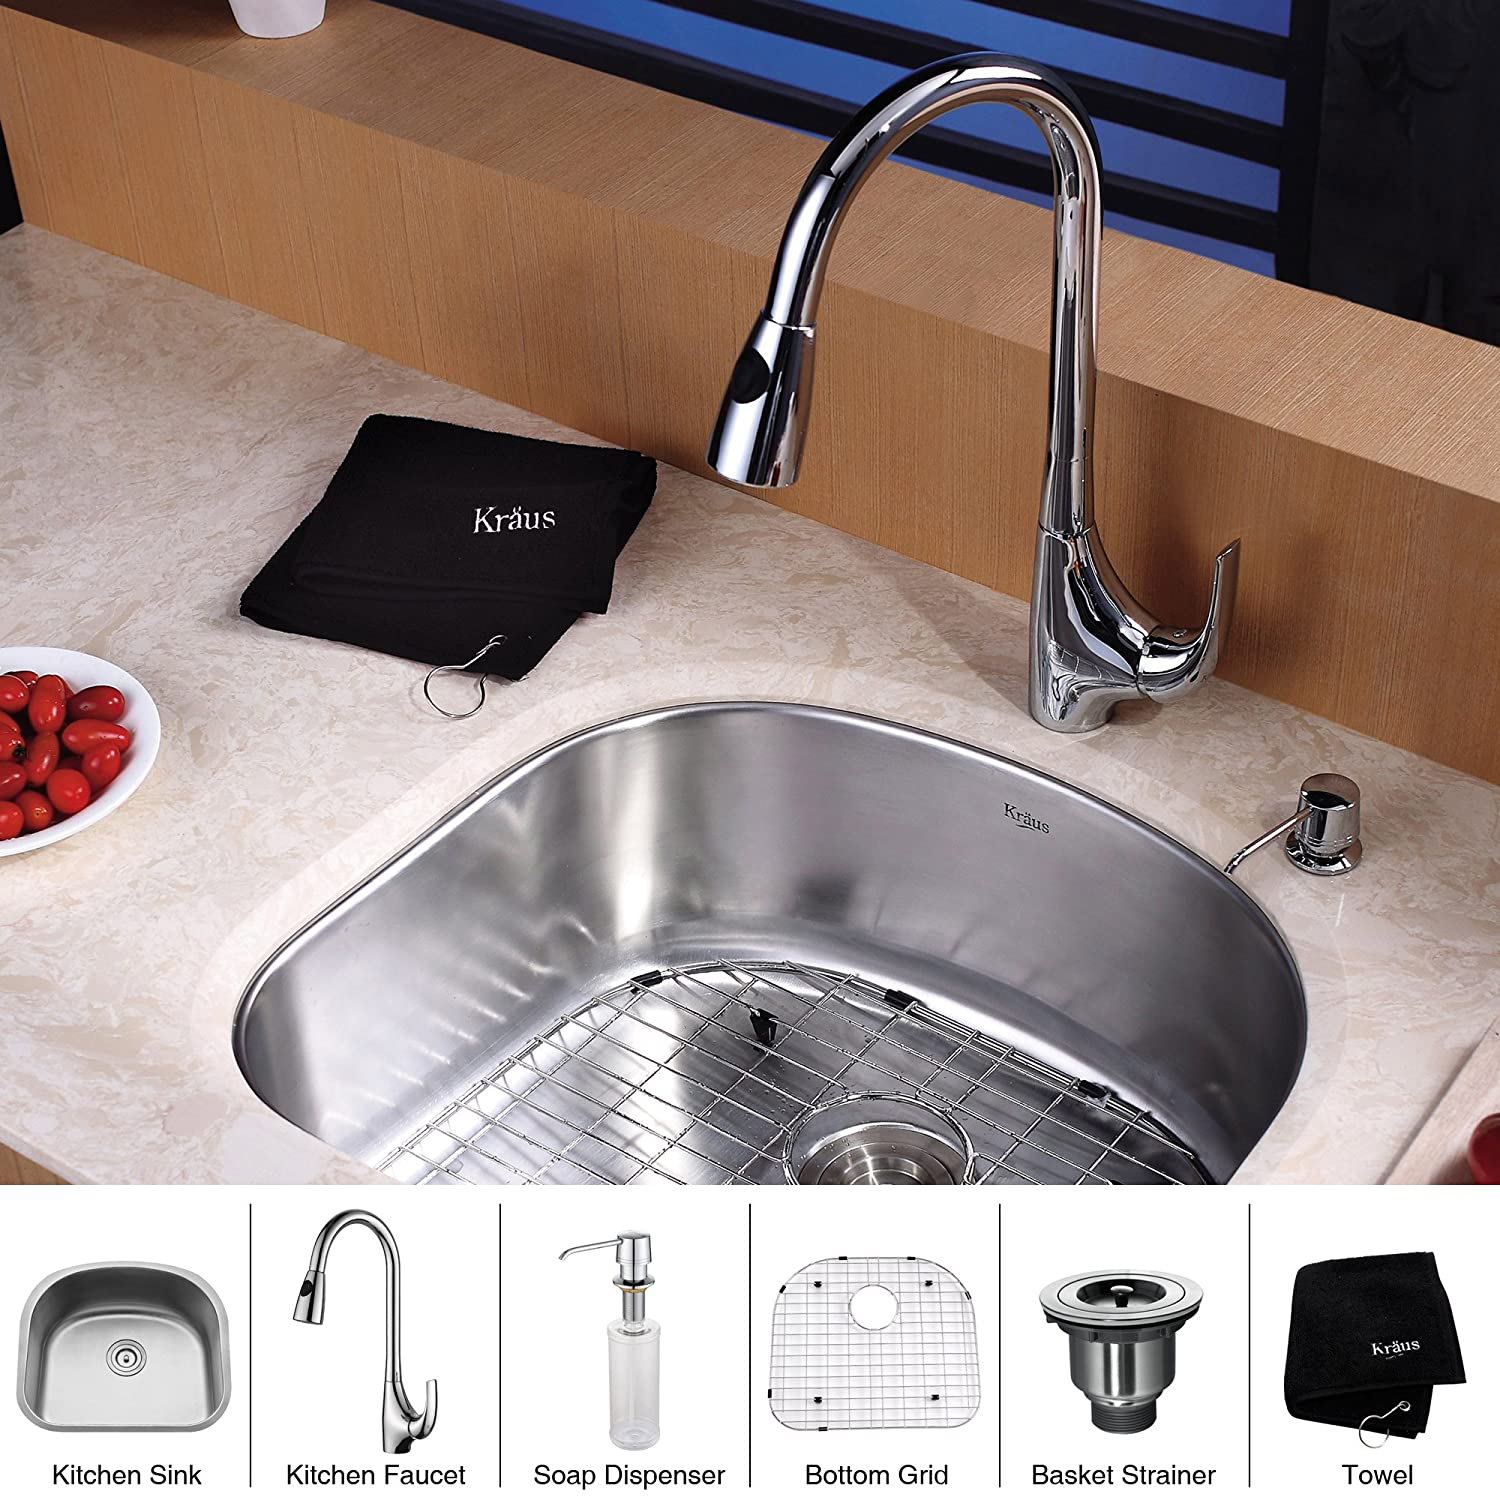 Golden Vantage 32 x 18 x 9 Handmade Top Mount Single Bowl Drop-In 18 Gauge Stainless Steel Kitchen Sink